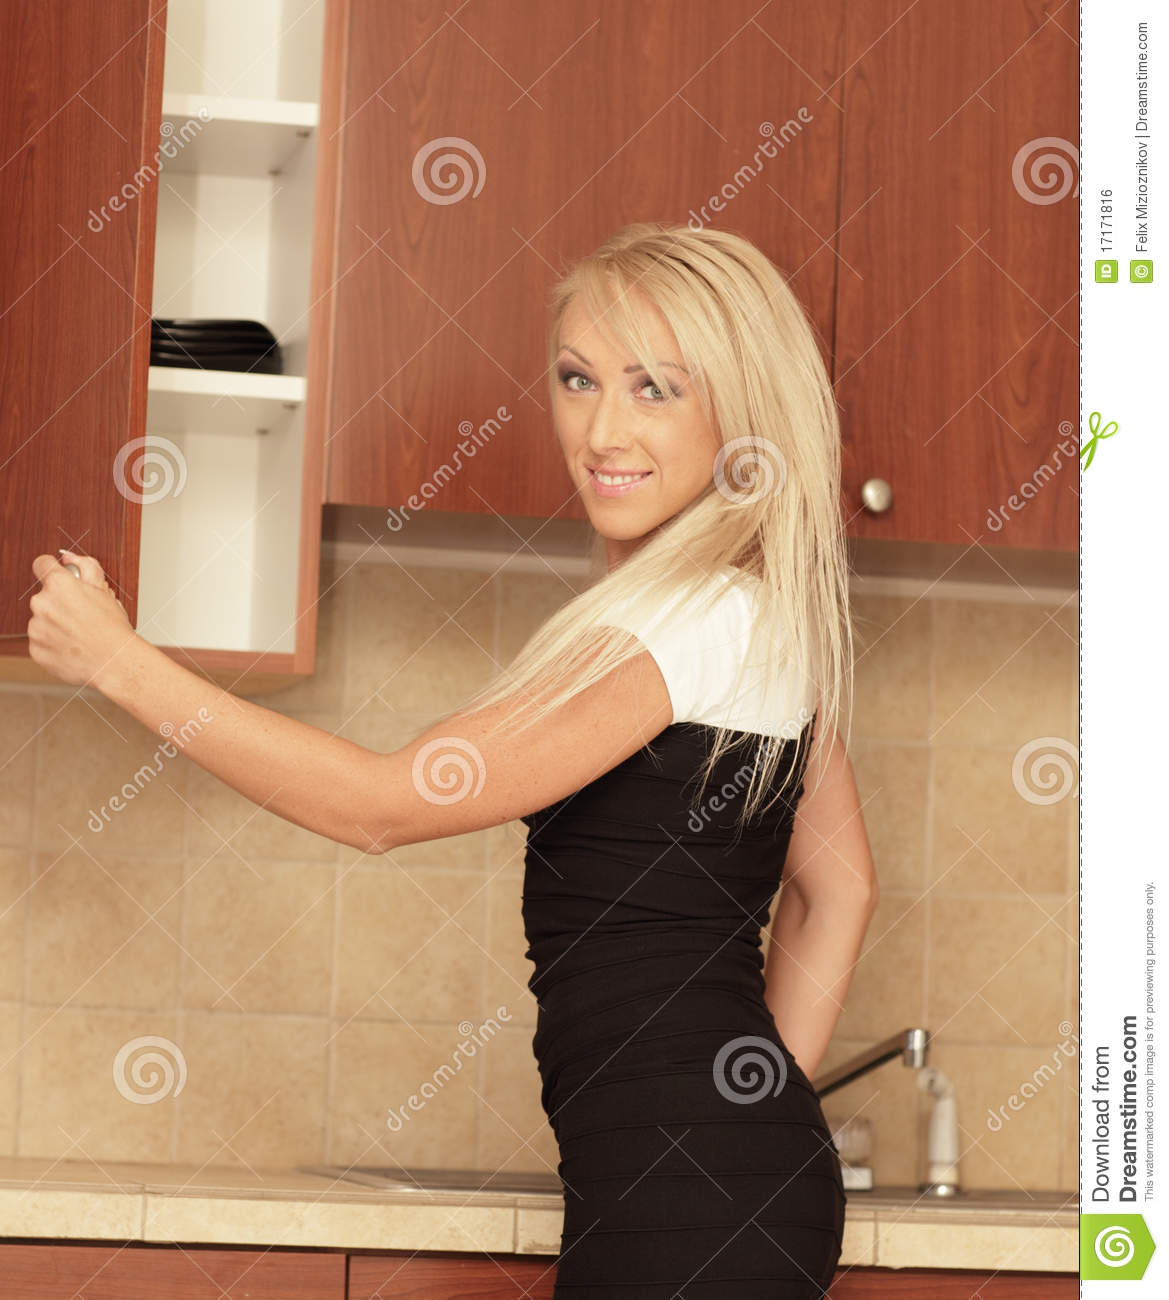 Women Kitchen: Woman In A Kitchen Setting Stock Photo. Image Of Modern